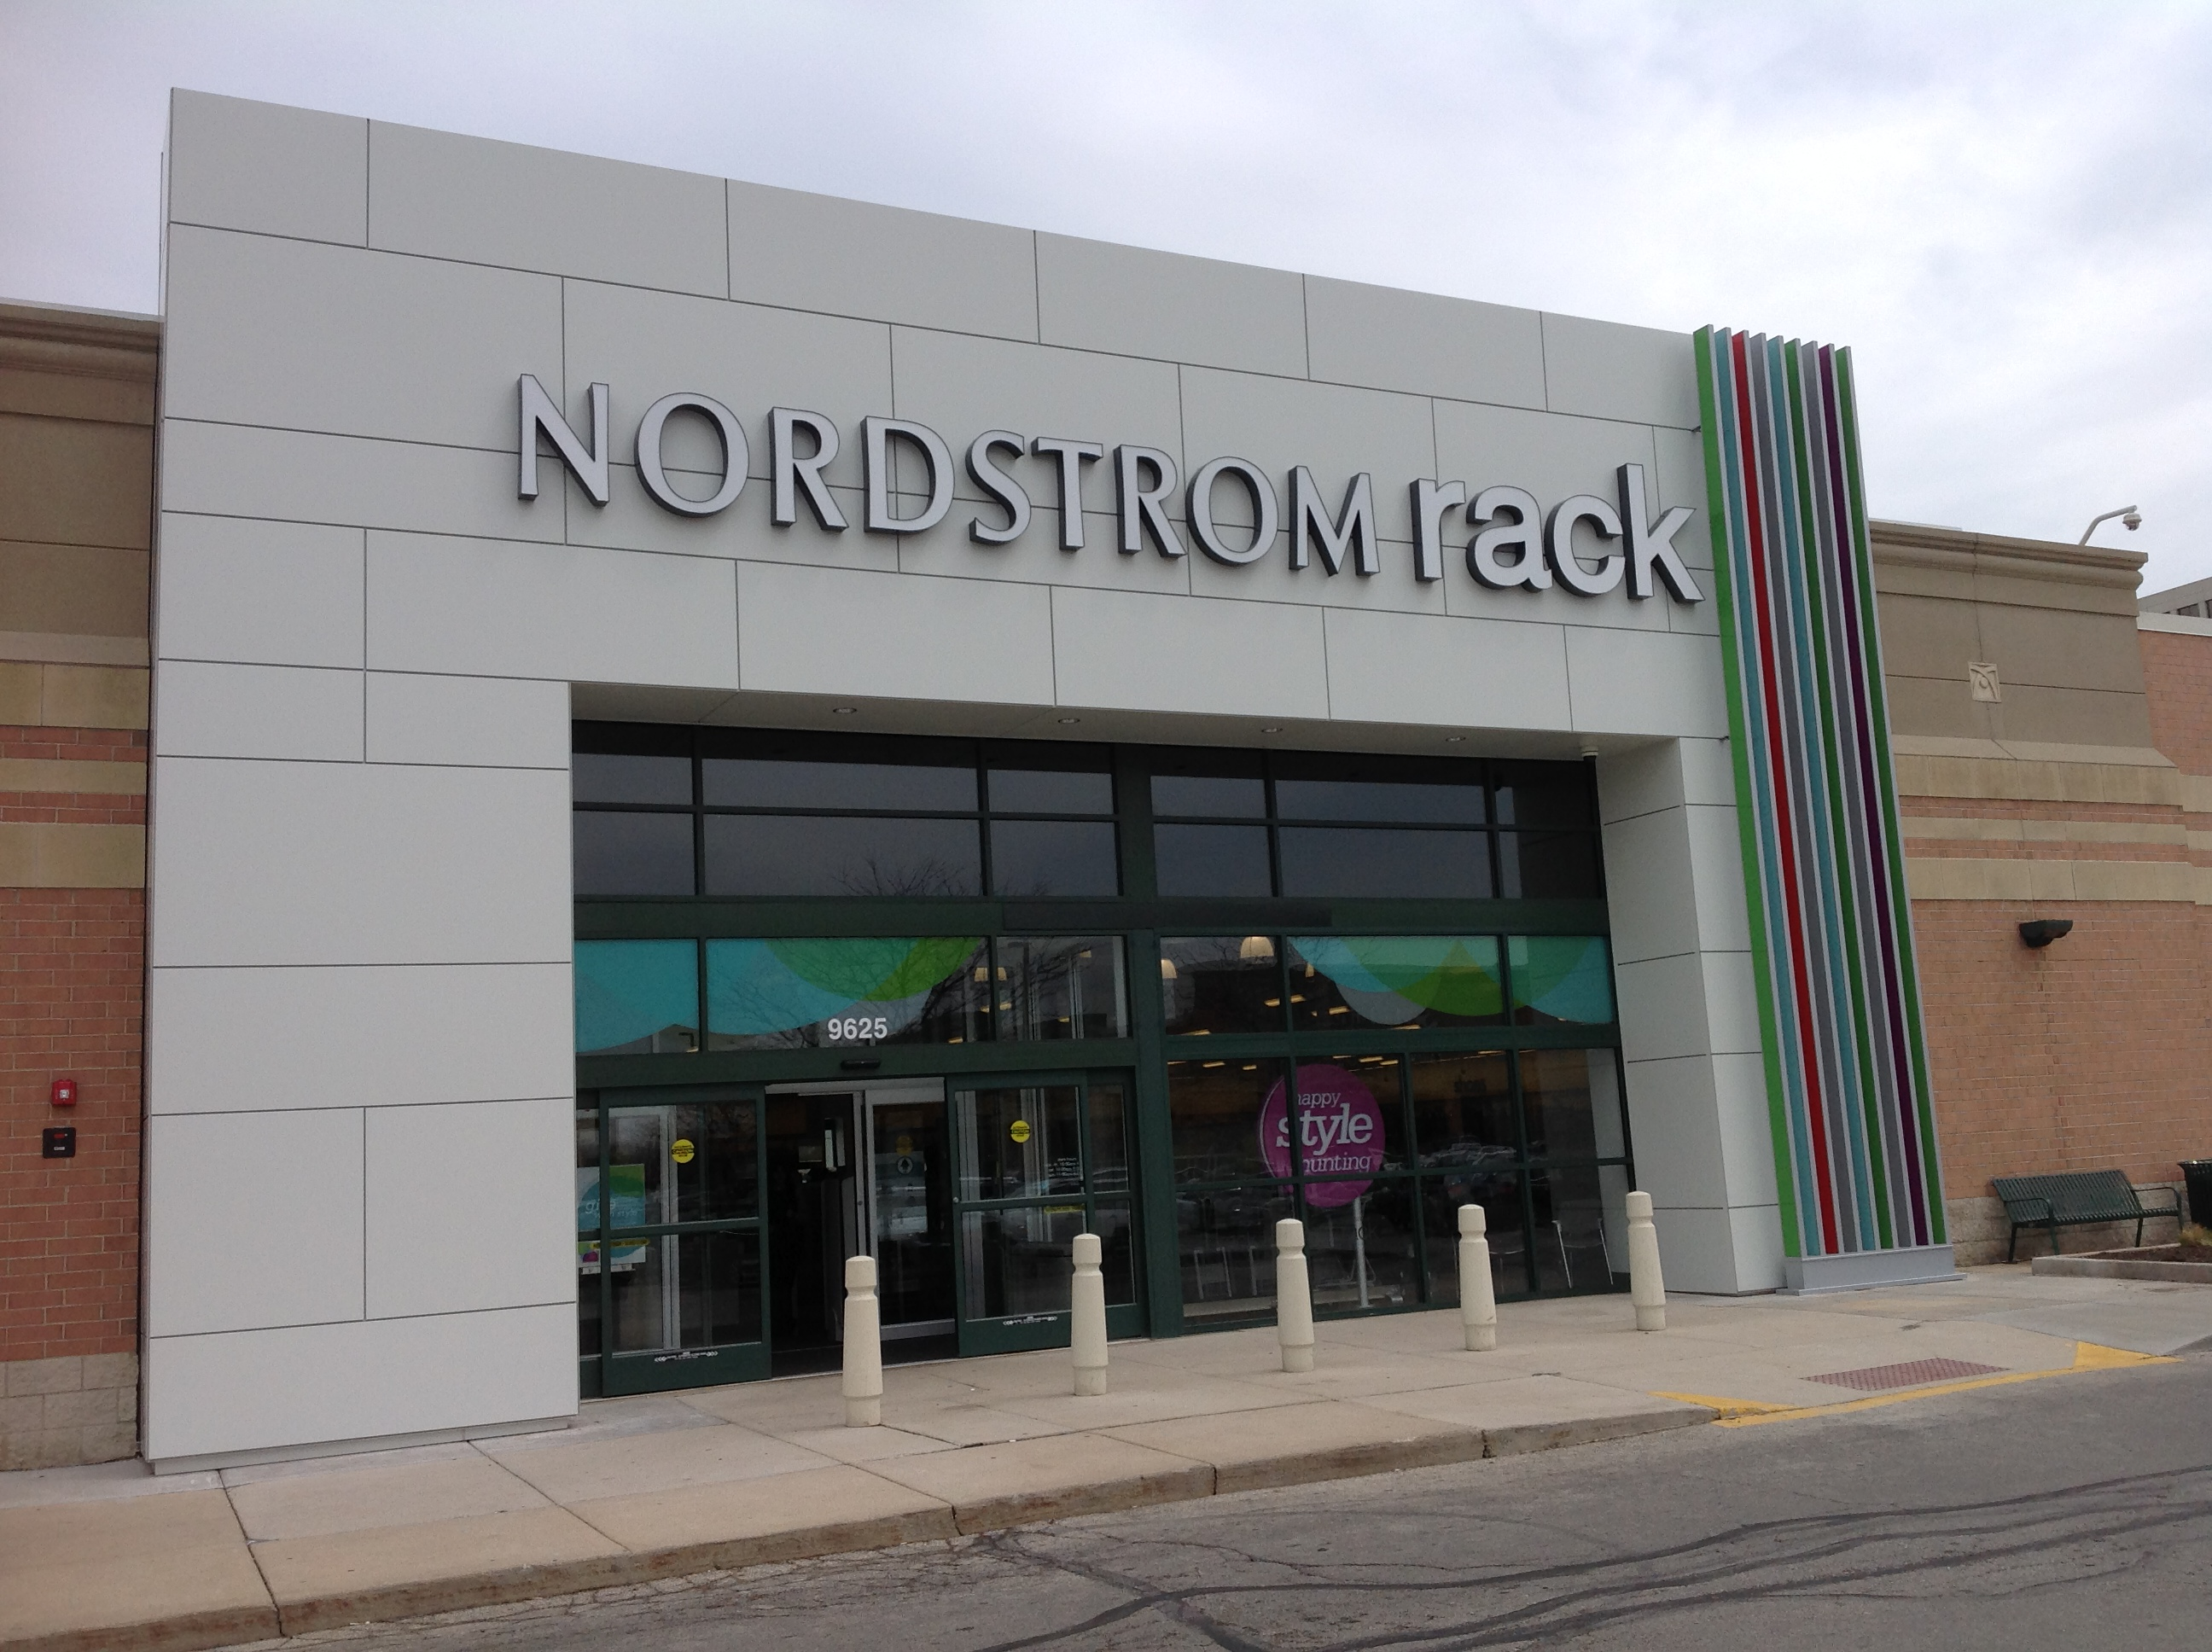 Stokie Nordstrom Rack (Stokie)